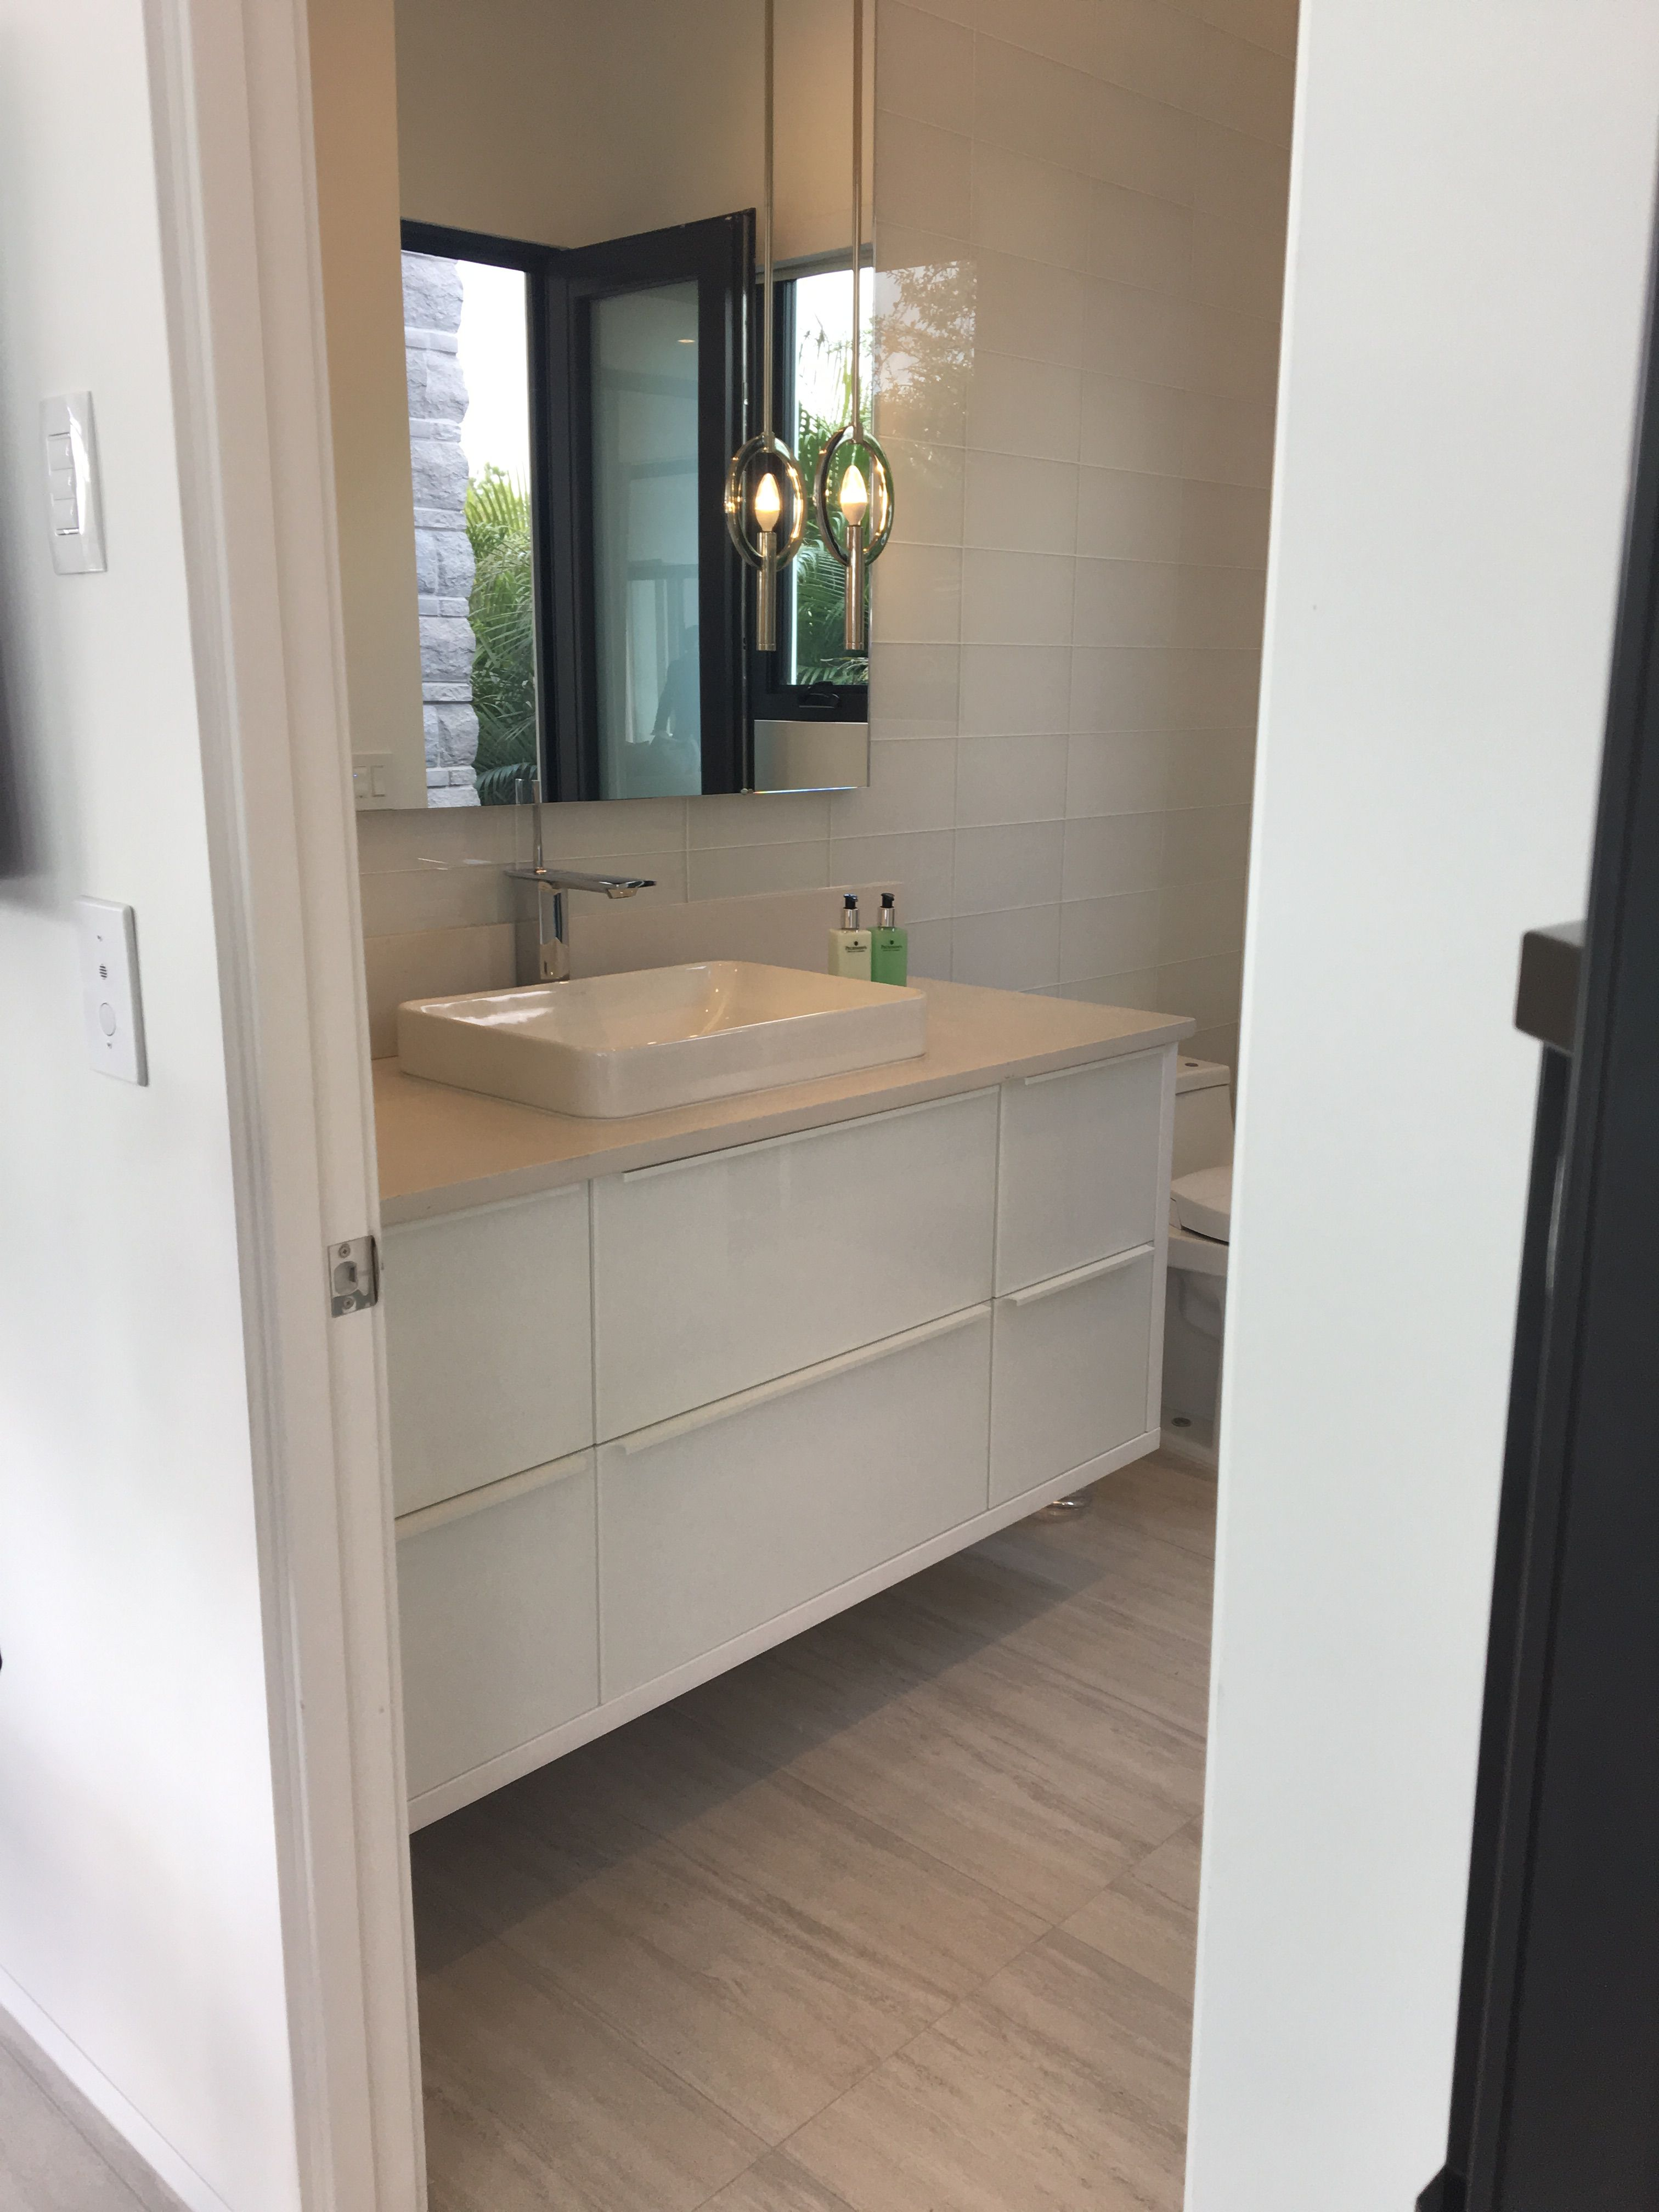 Pin by Kirsty Froelich on {KBIS 2017 orlando} | Vanity